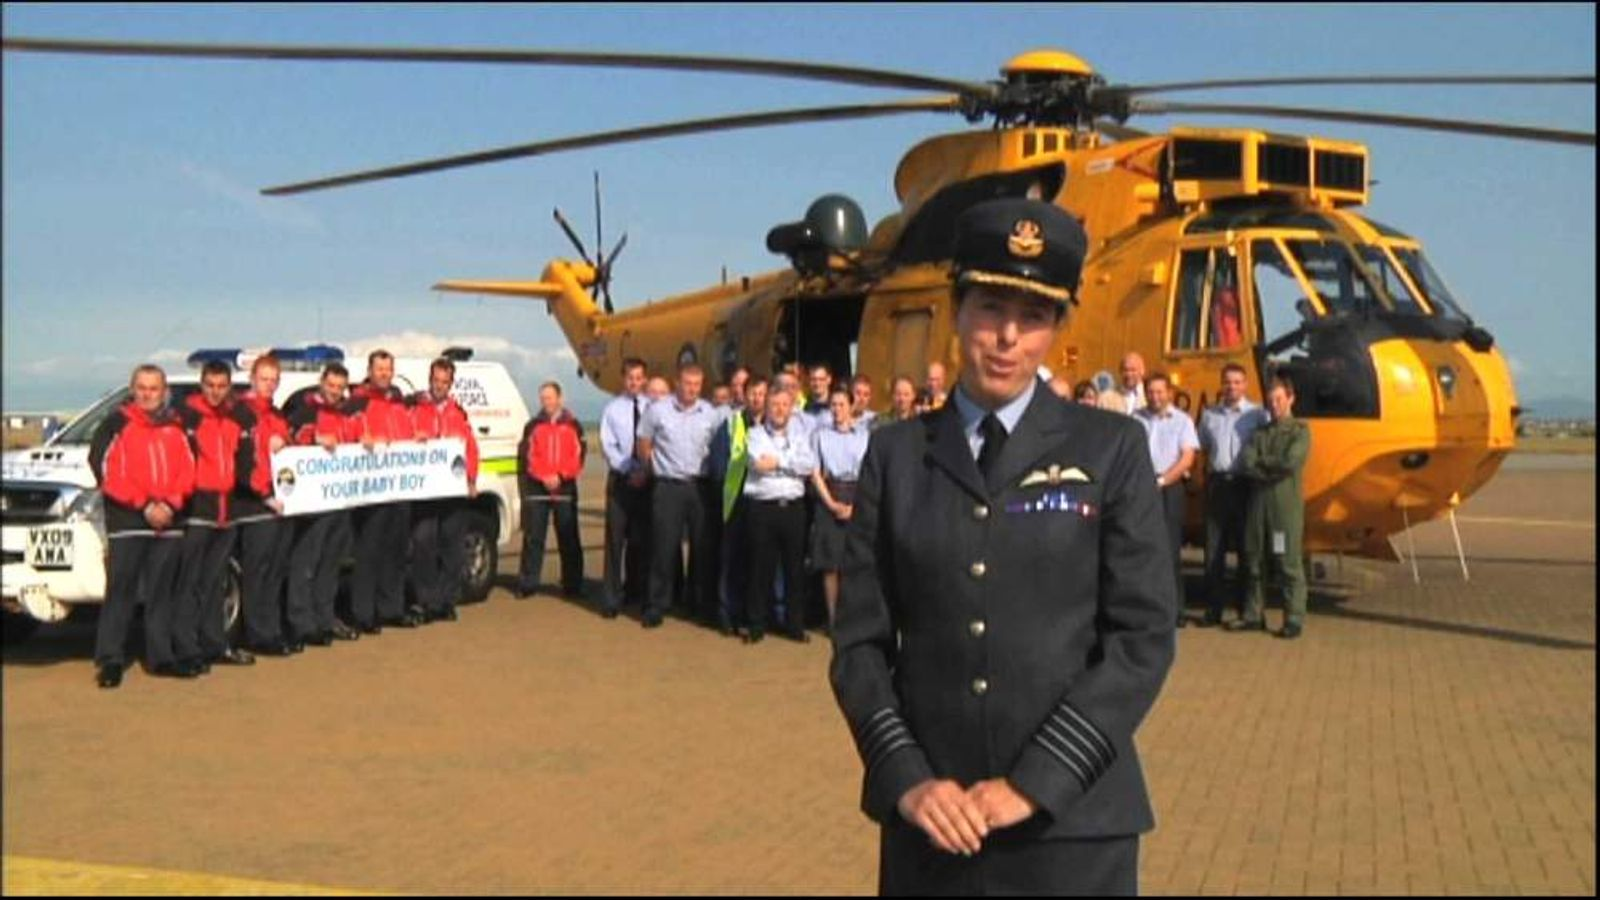 RAF search and rescue congratulations on royal baby